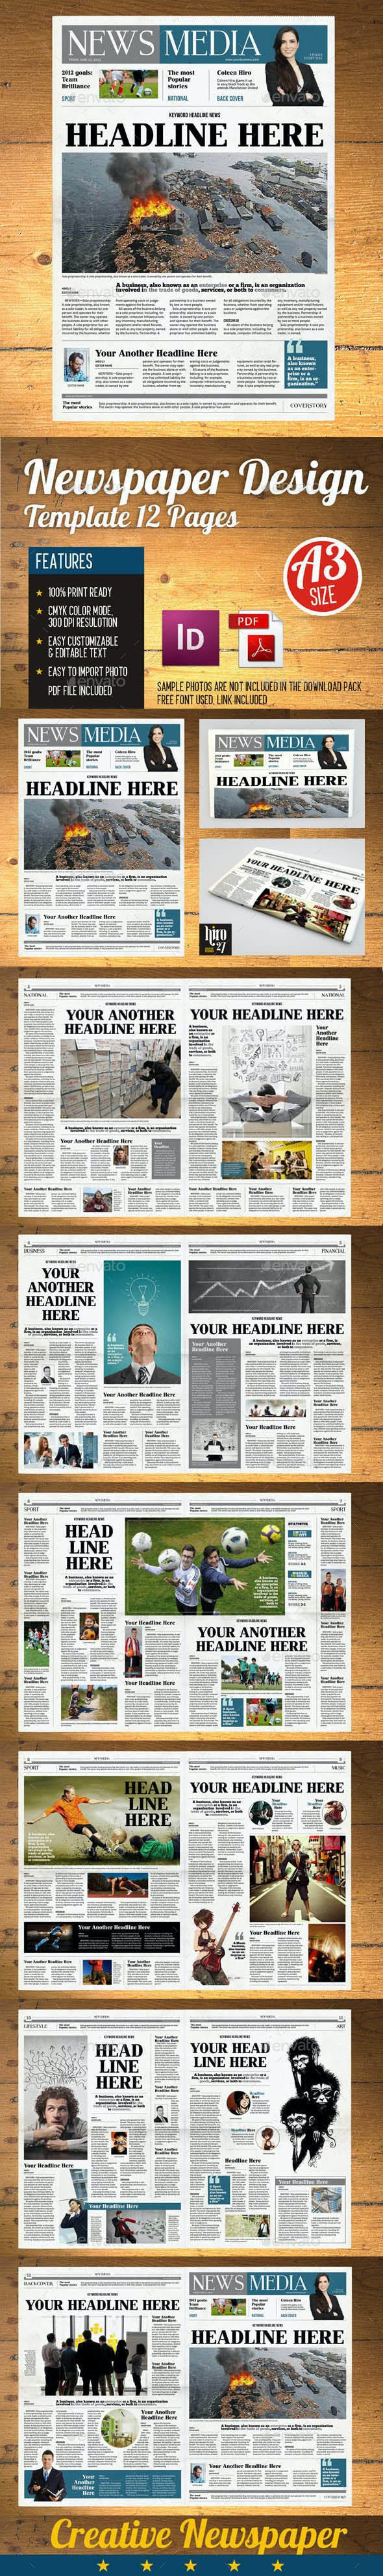 newspaper template 12 pages indesign a3 by hiro27 graphicriver